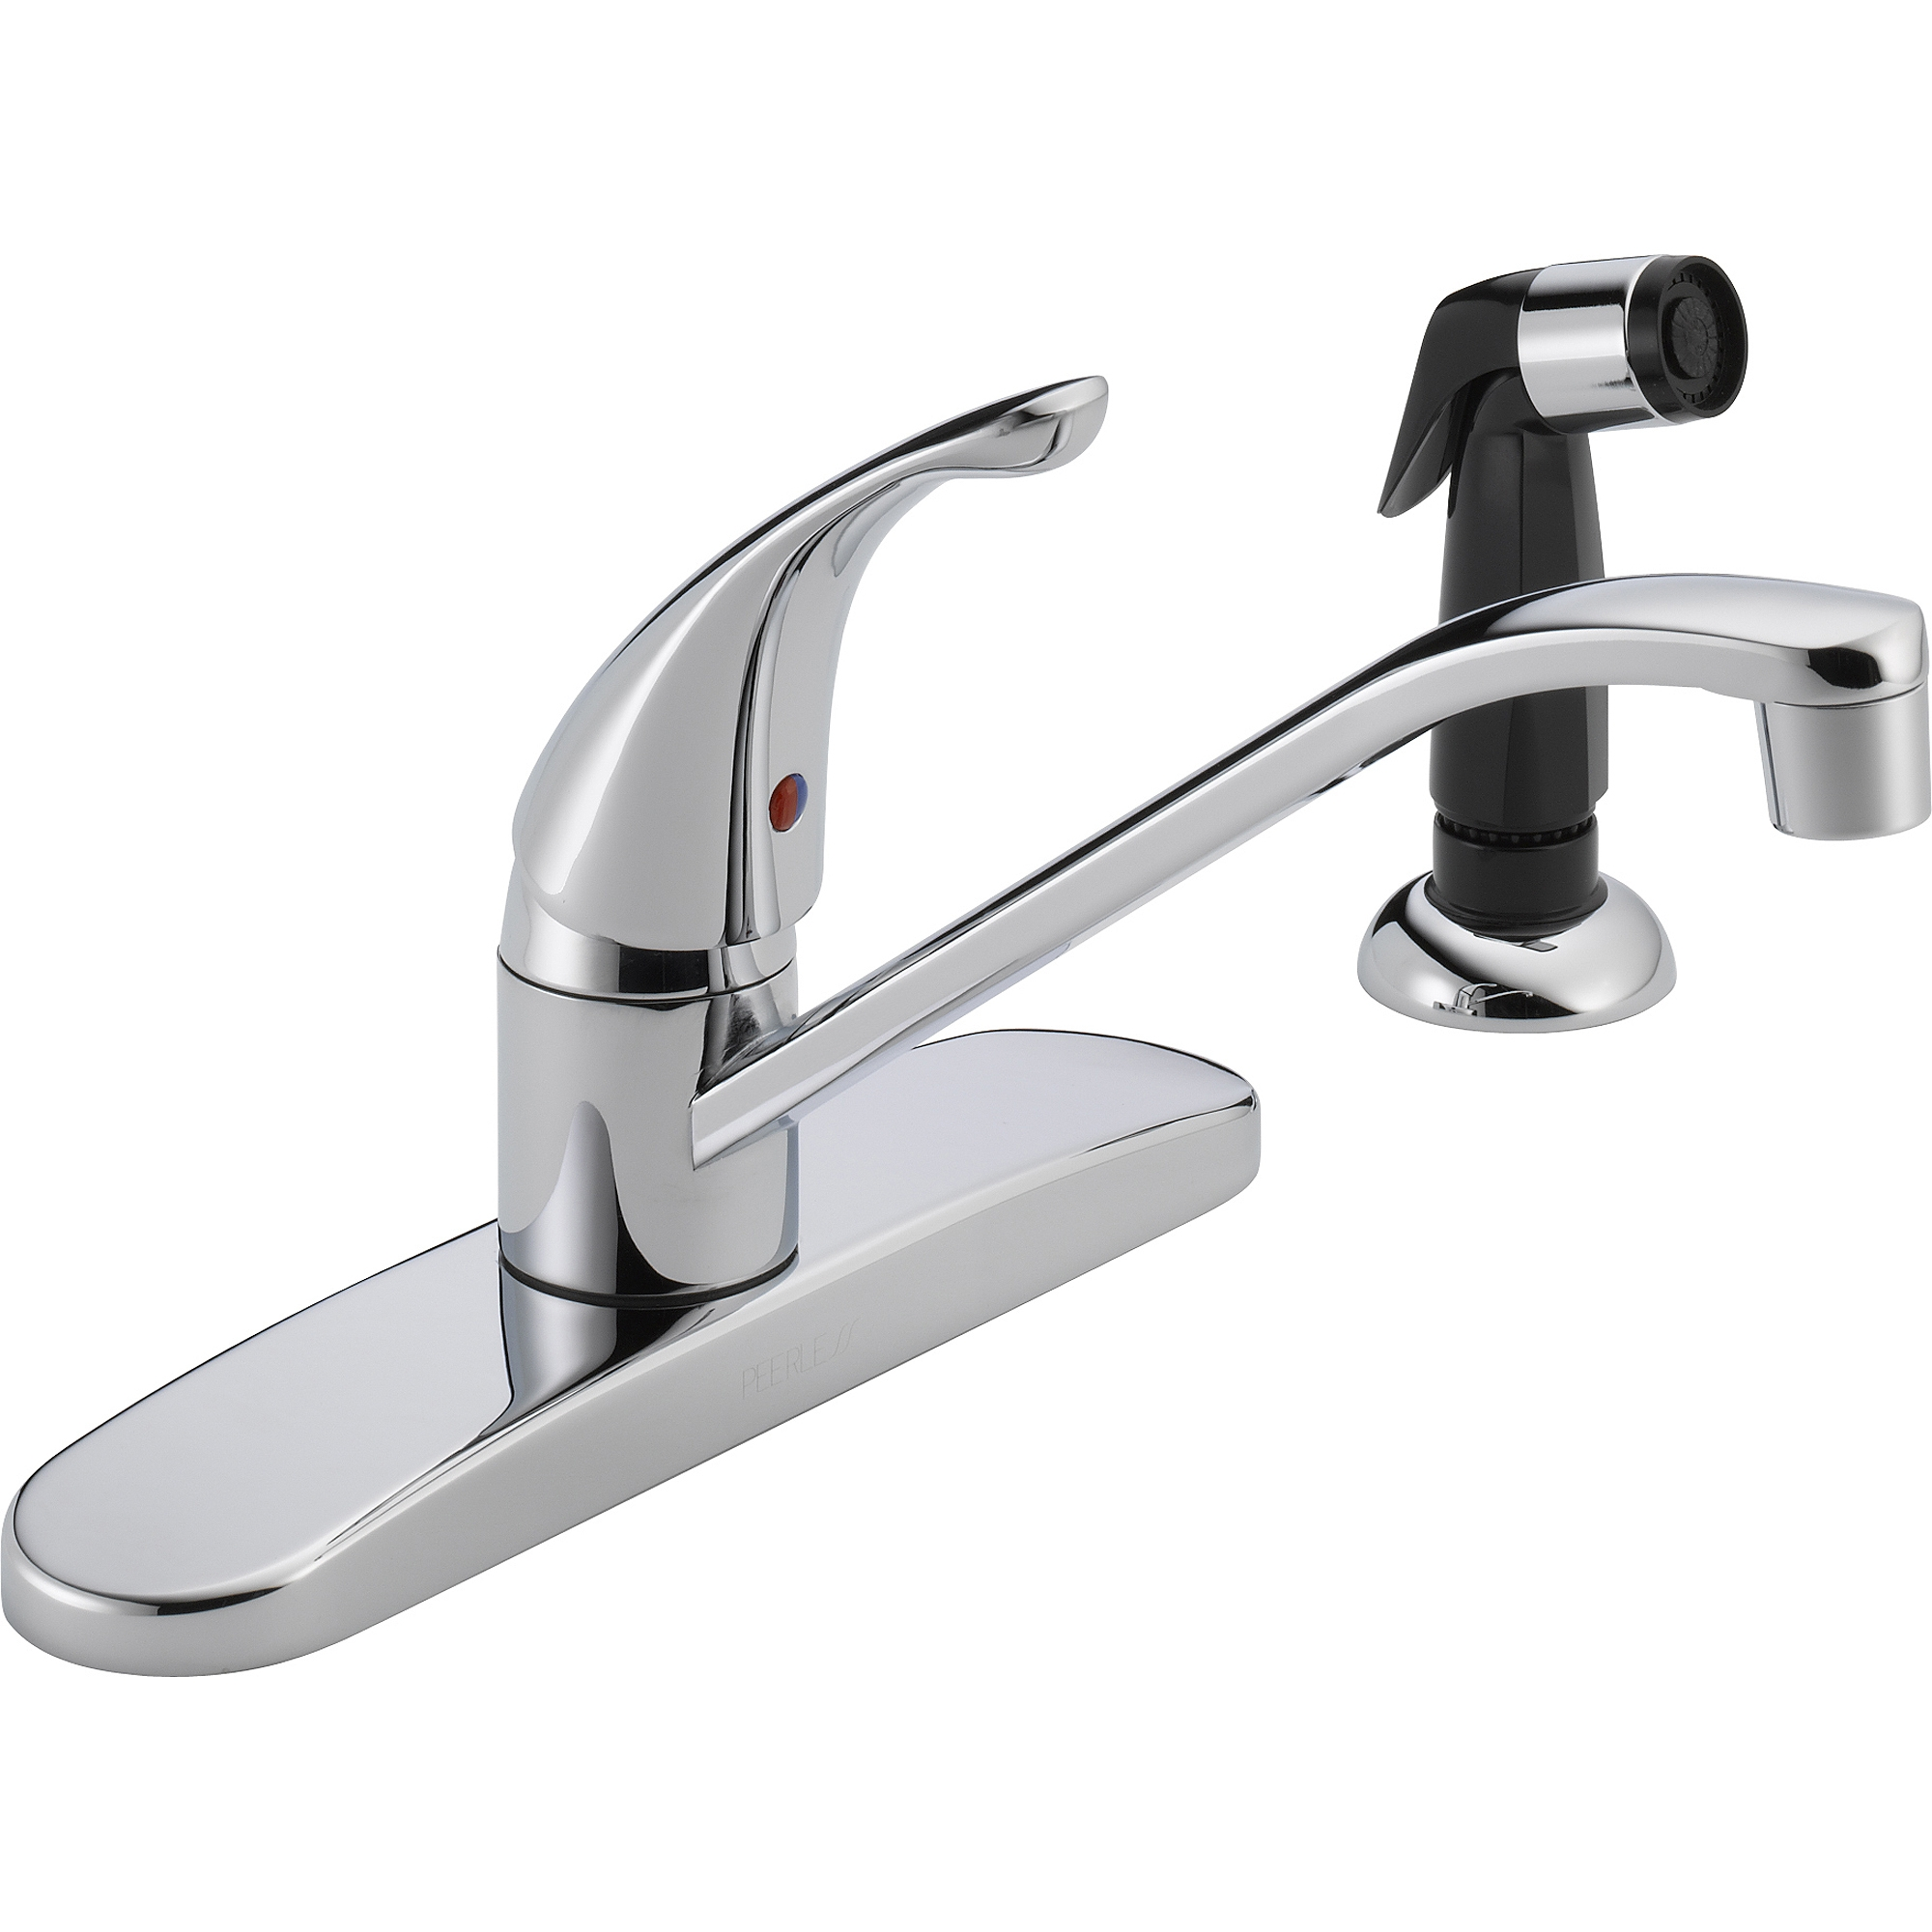 Ideas, types of moen kitchen faucets types of moen kitchen faucets luxury moen kitchen faucet with water filter d0u lifetime 2000 x 2000  .